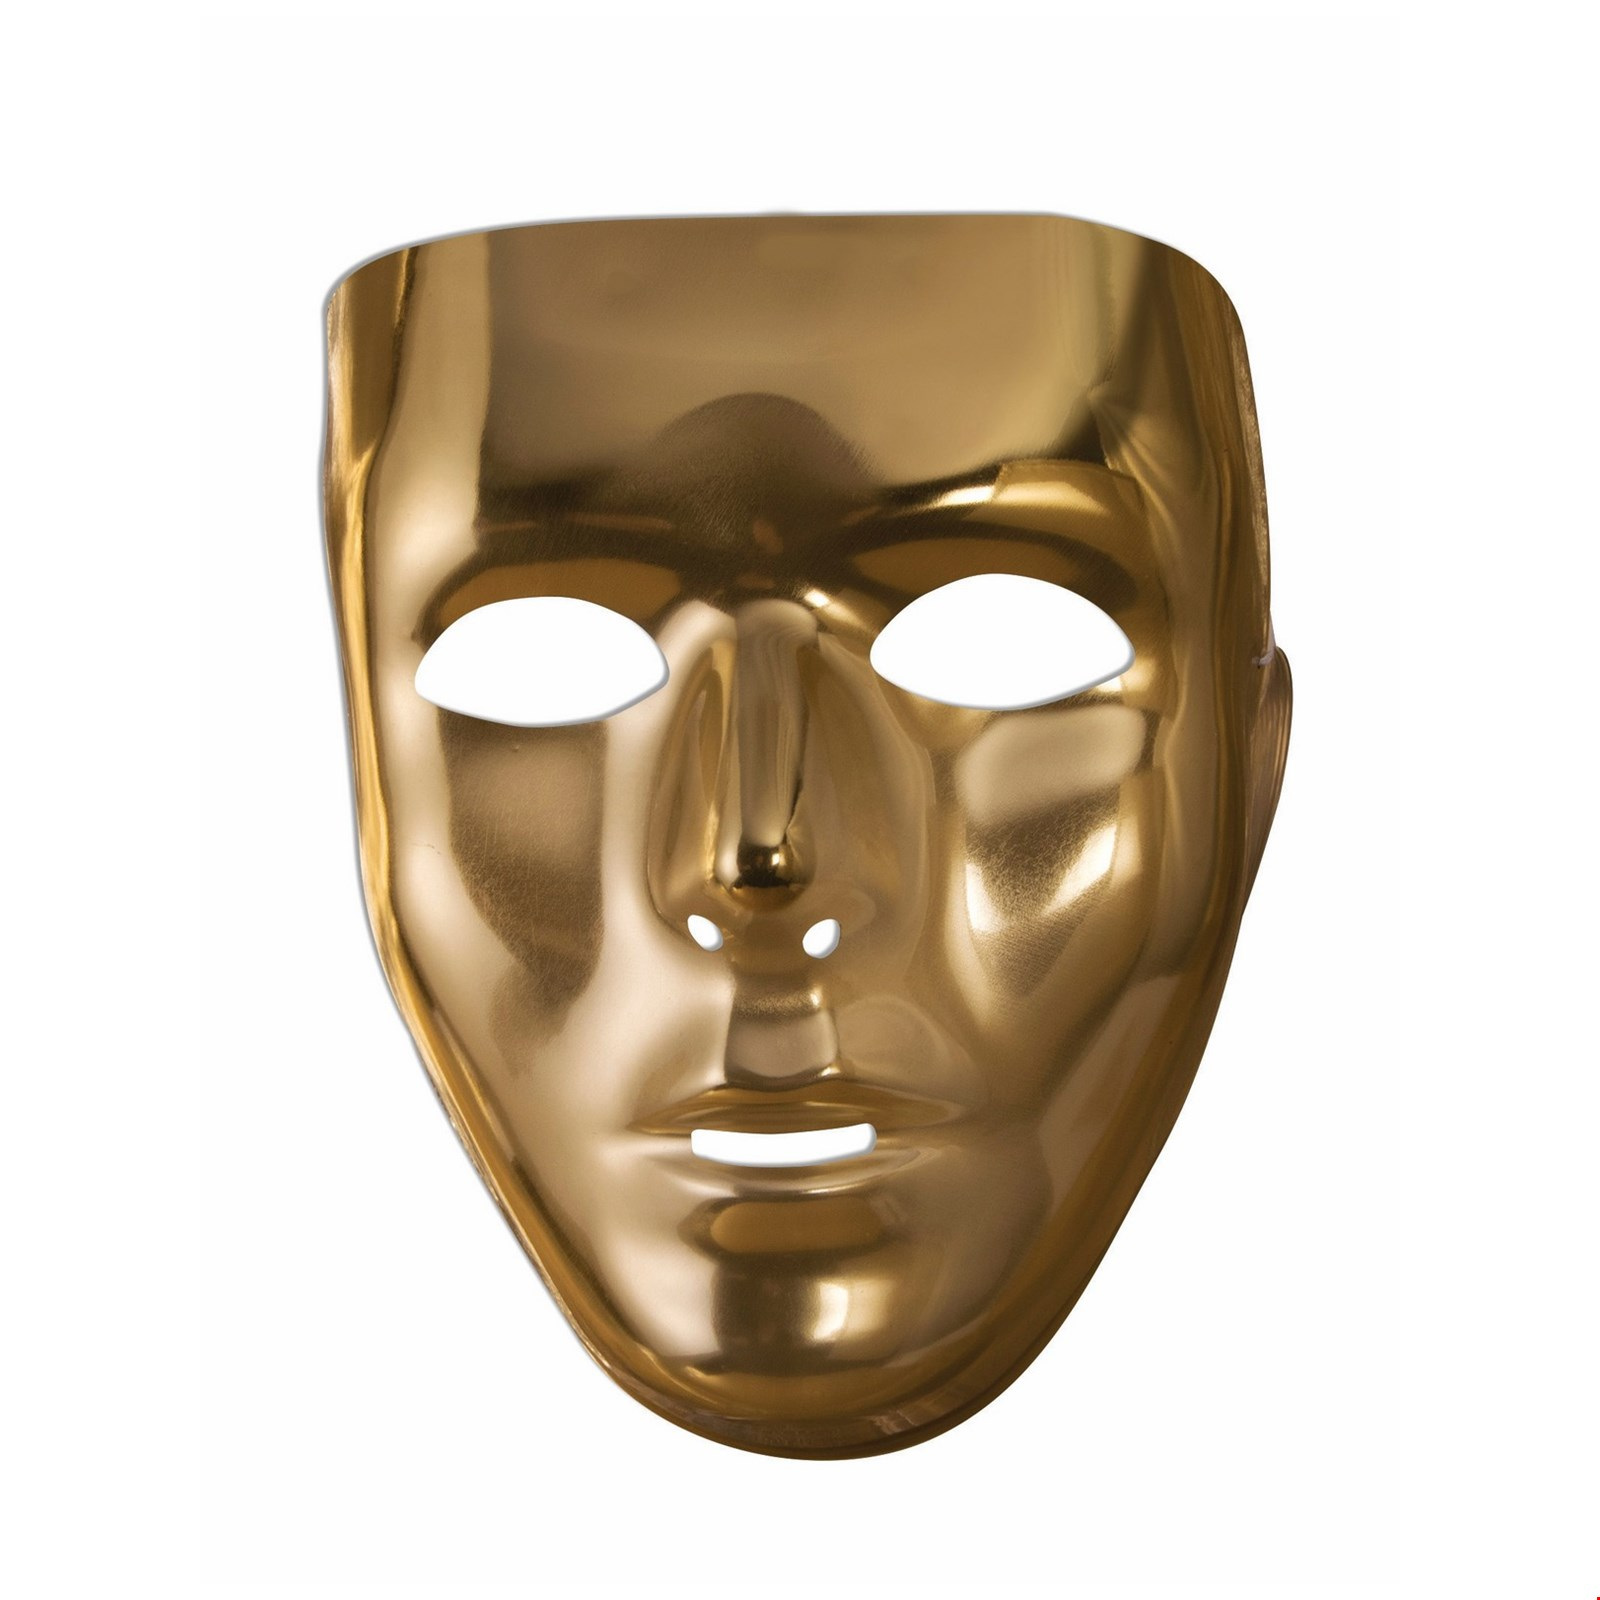 Exceptional Gold Full Face Mask Halloween Costume Accessory